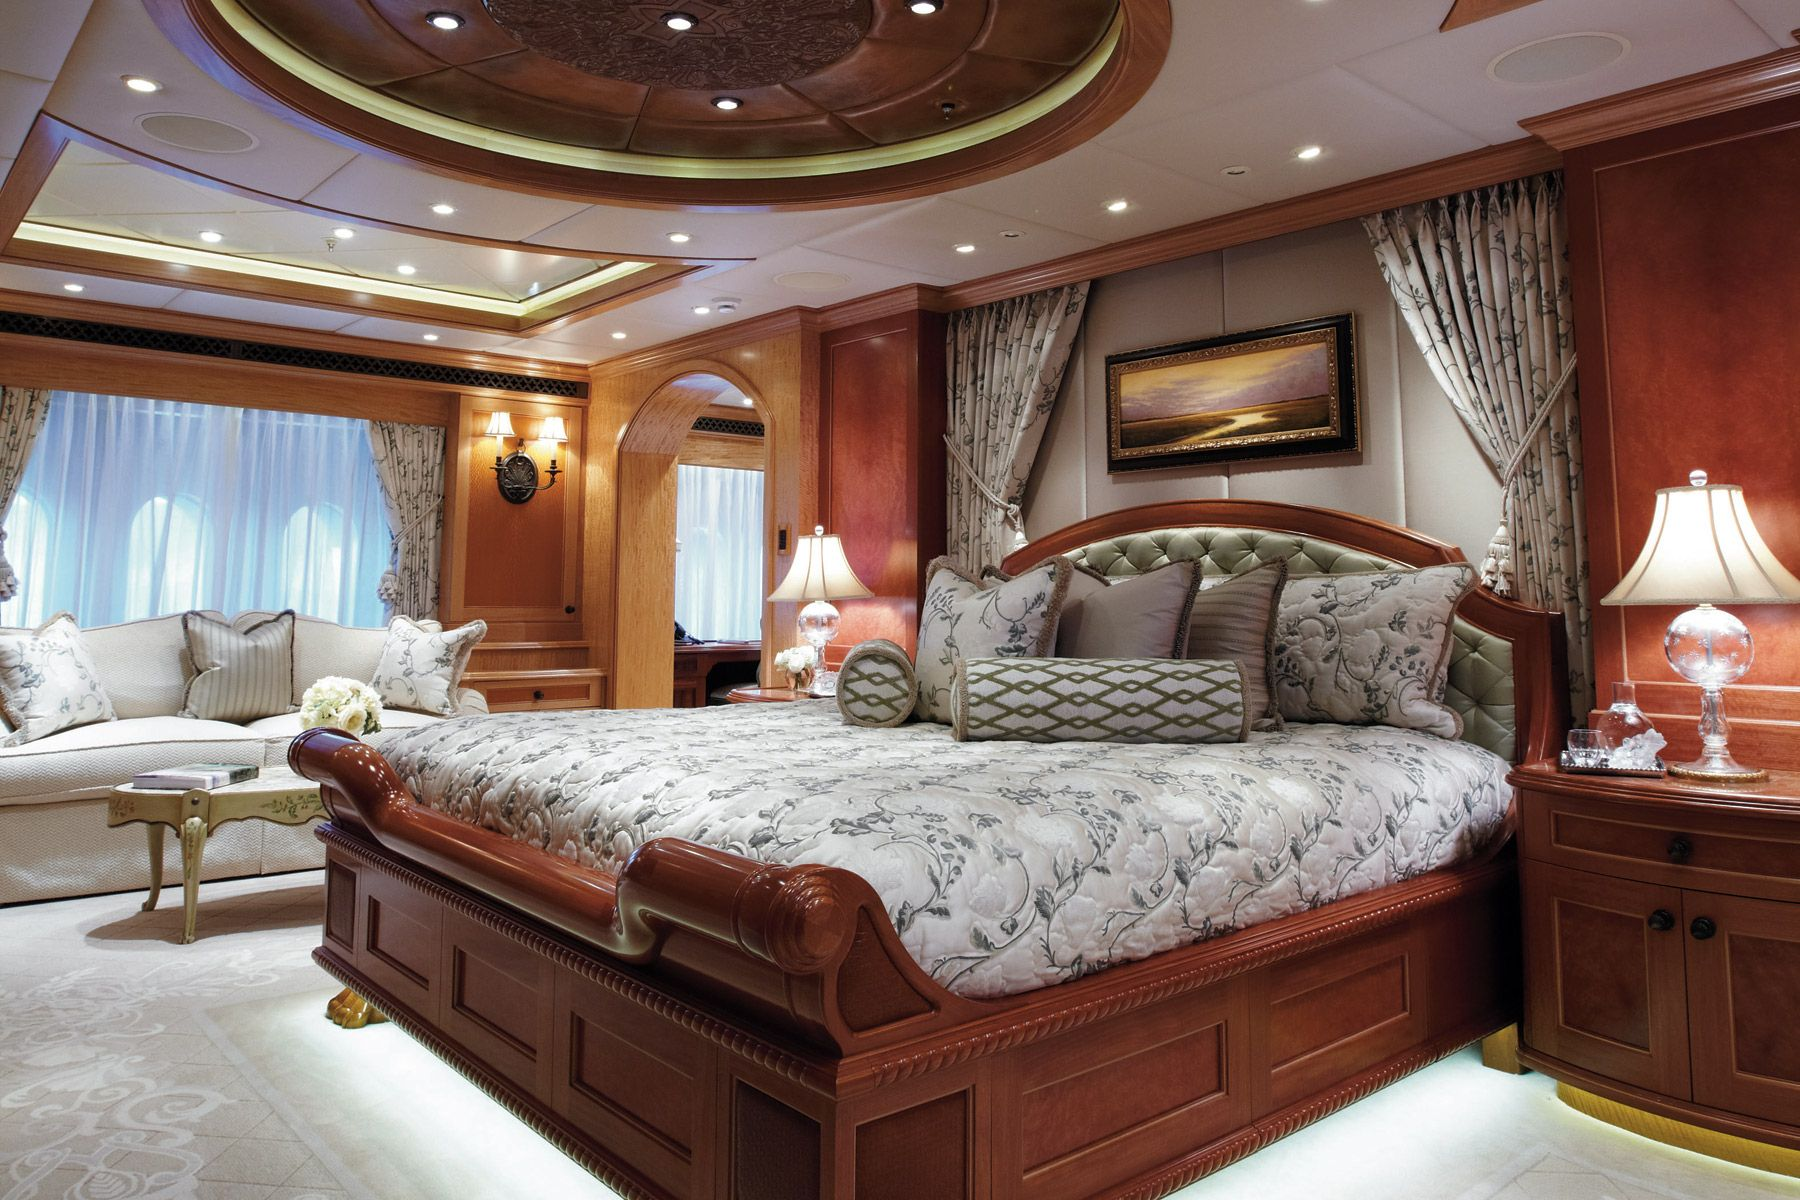 Yacht Bedrooms Experience Yachts Services Team Contact Blog Yachts Pinterest Bedrooms